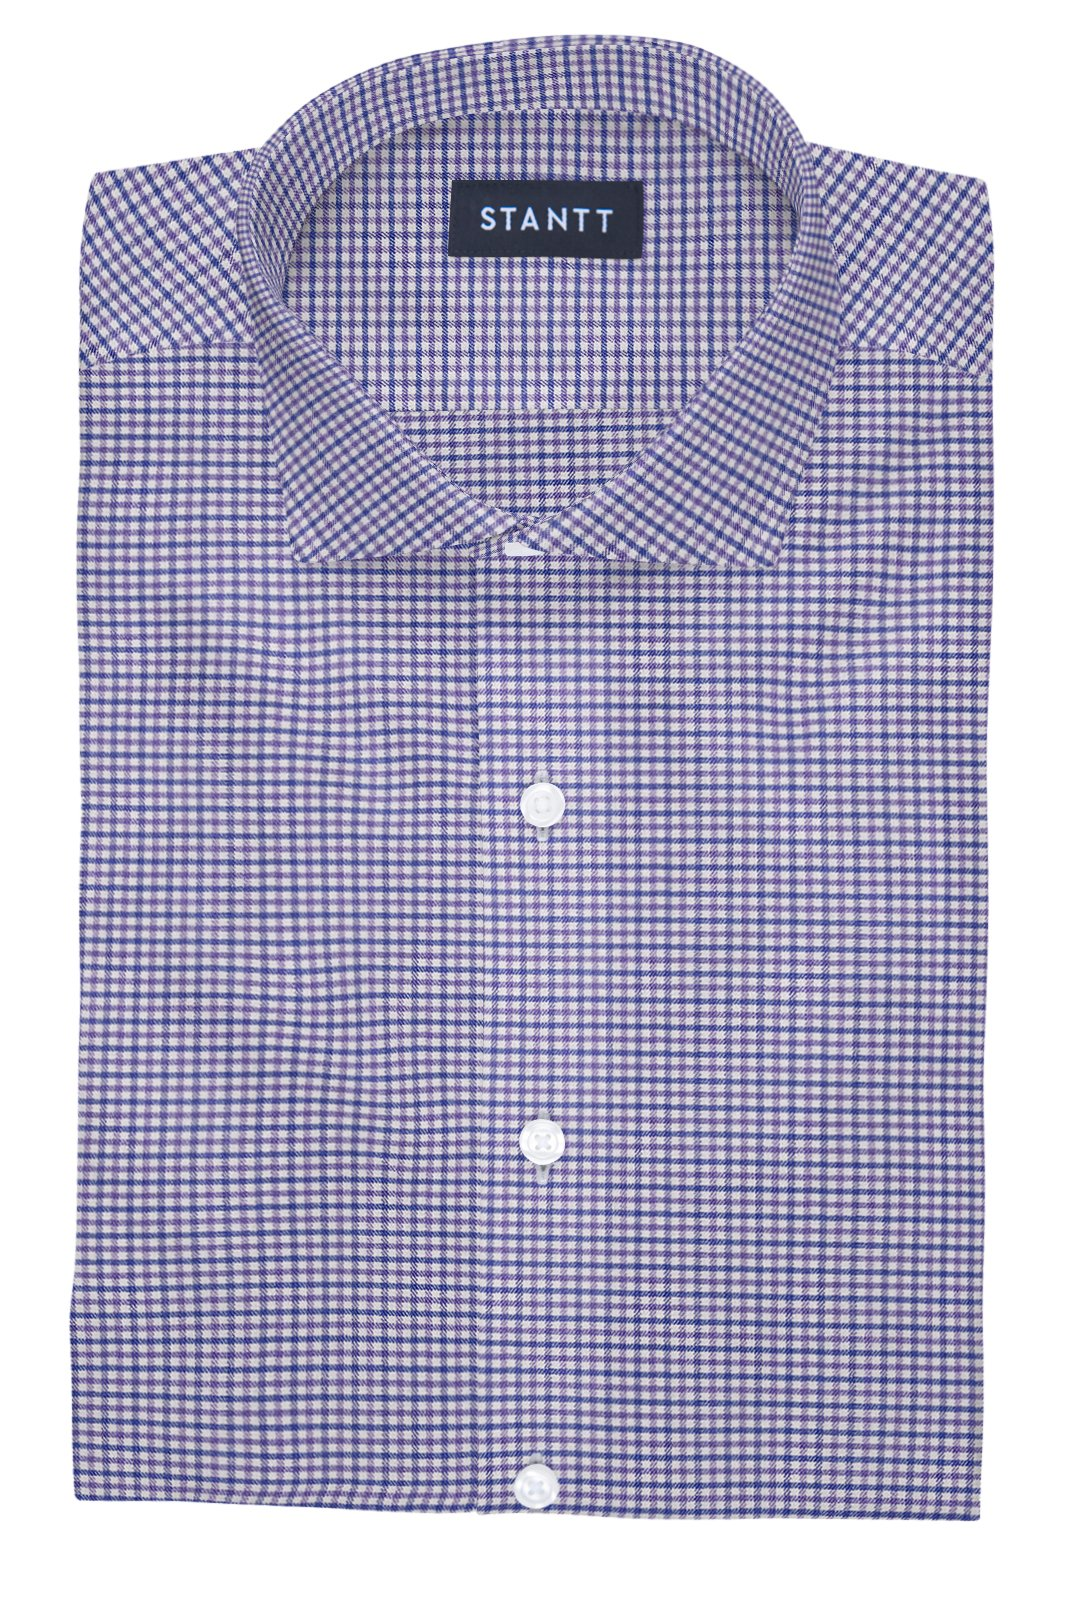 Performance Purple and Blue Mini Gingham: Cutaway Collar, French Cuff